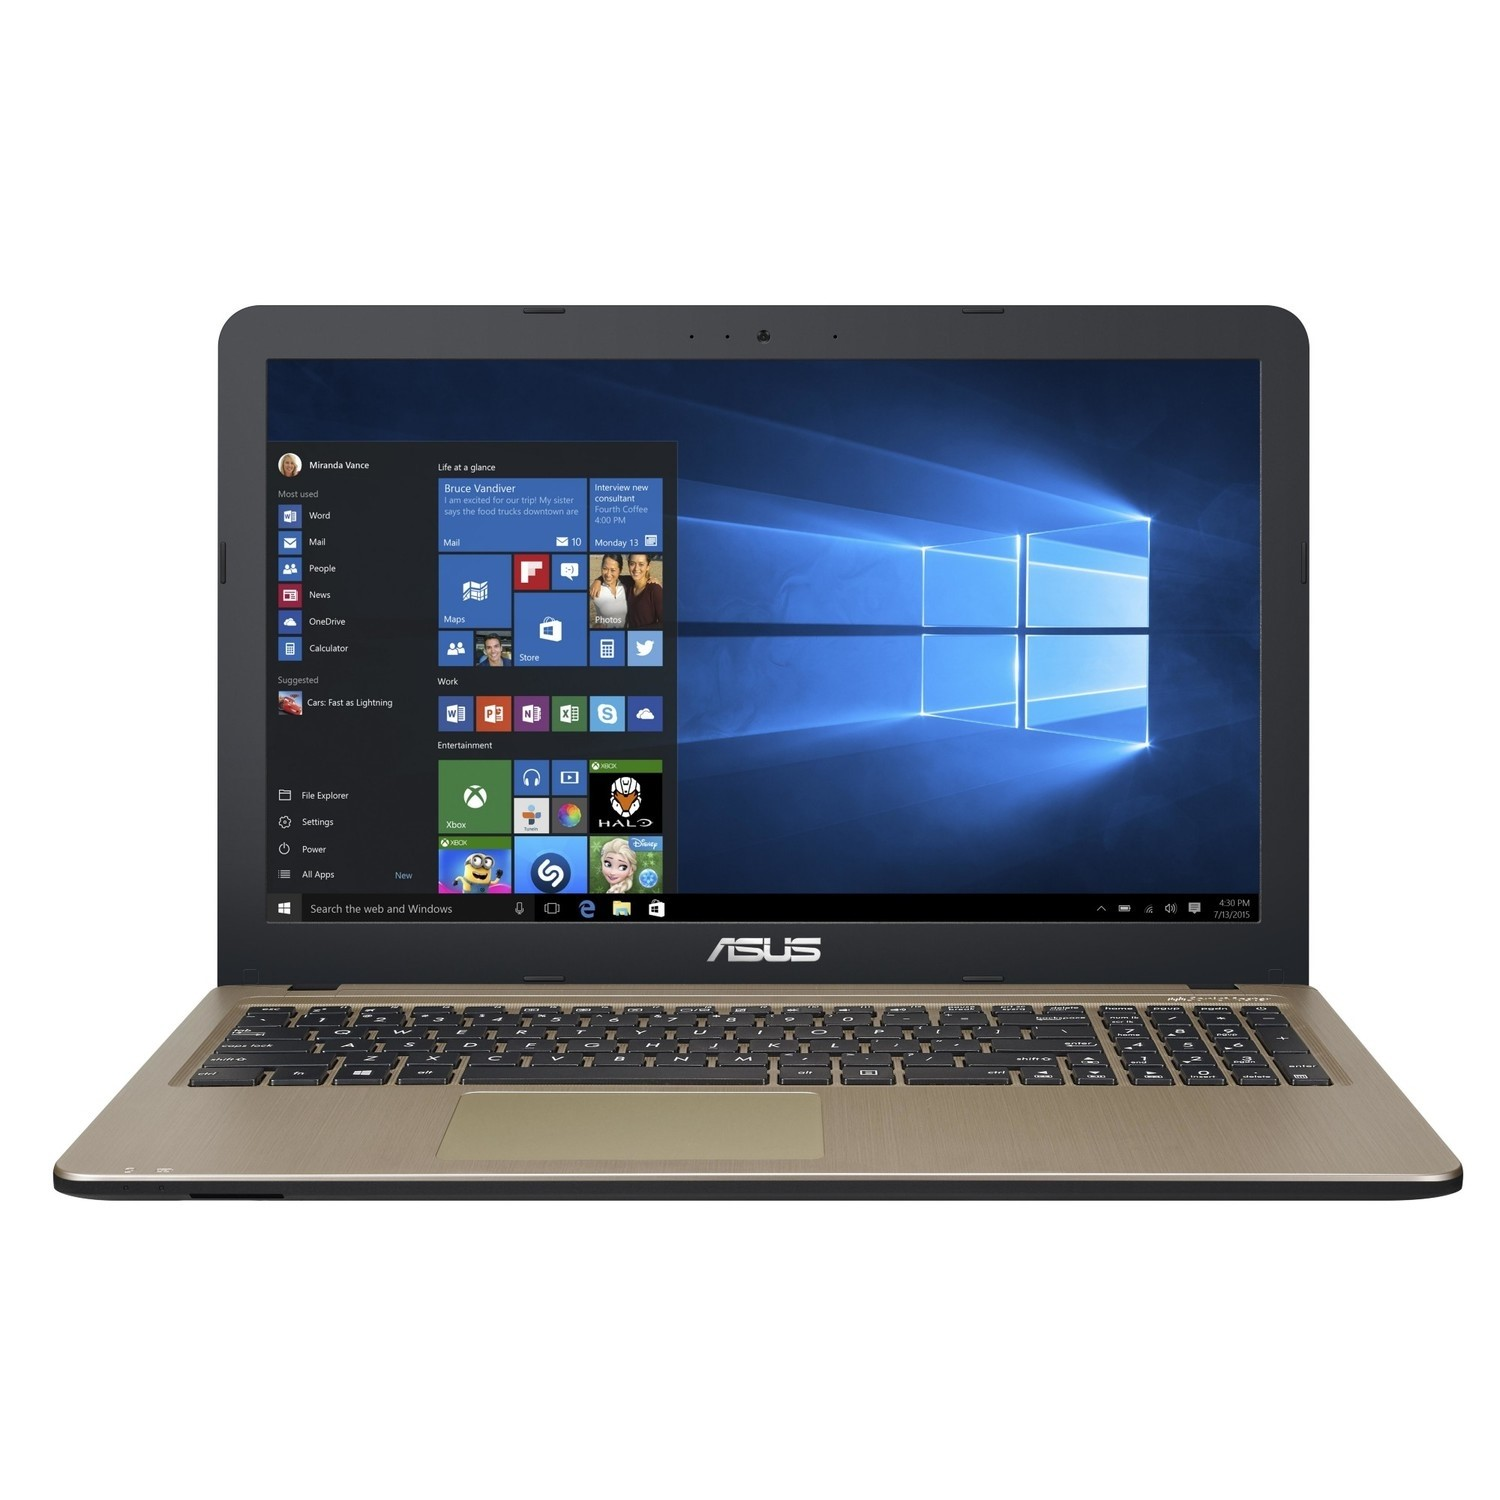 ASUS VIVOBOOK X540LA DOWNLOAD DRIVER